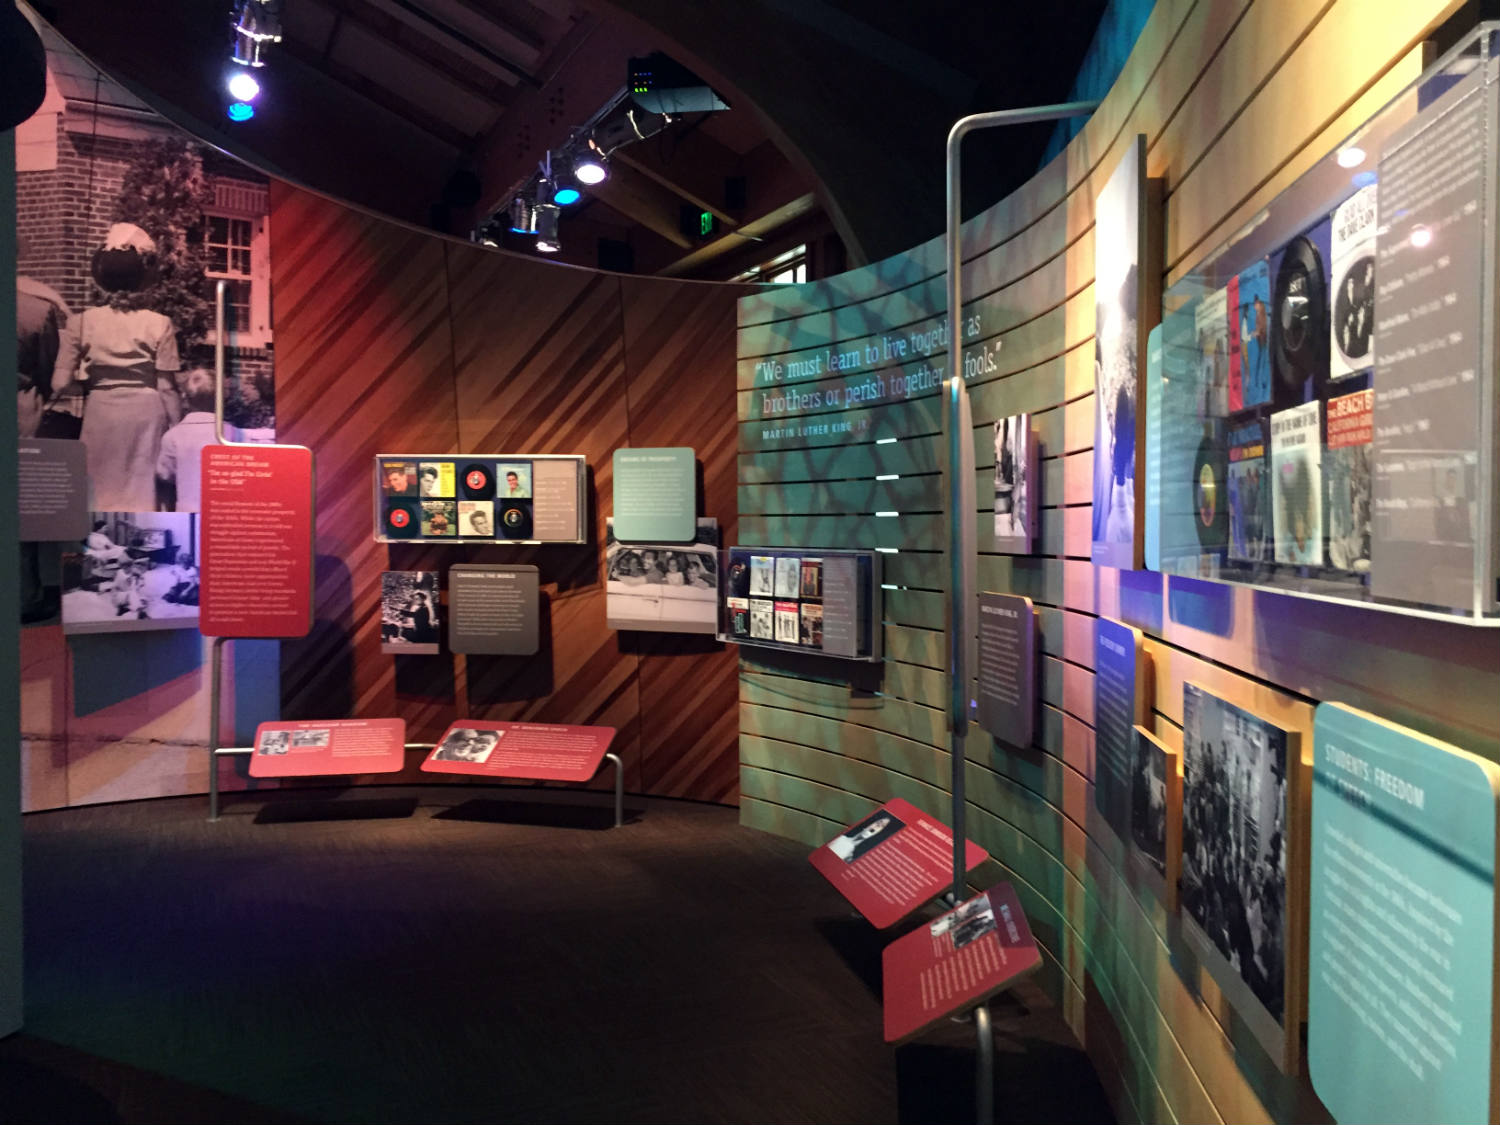 Historical Exhibit at the Woodstock Museum at Bethel Woods